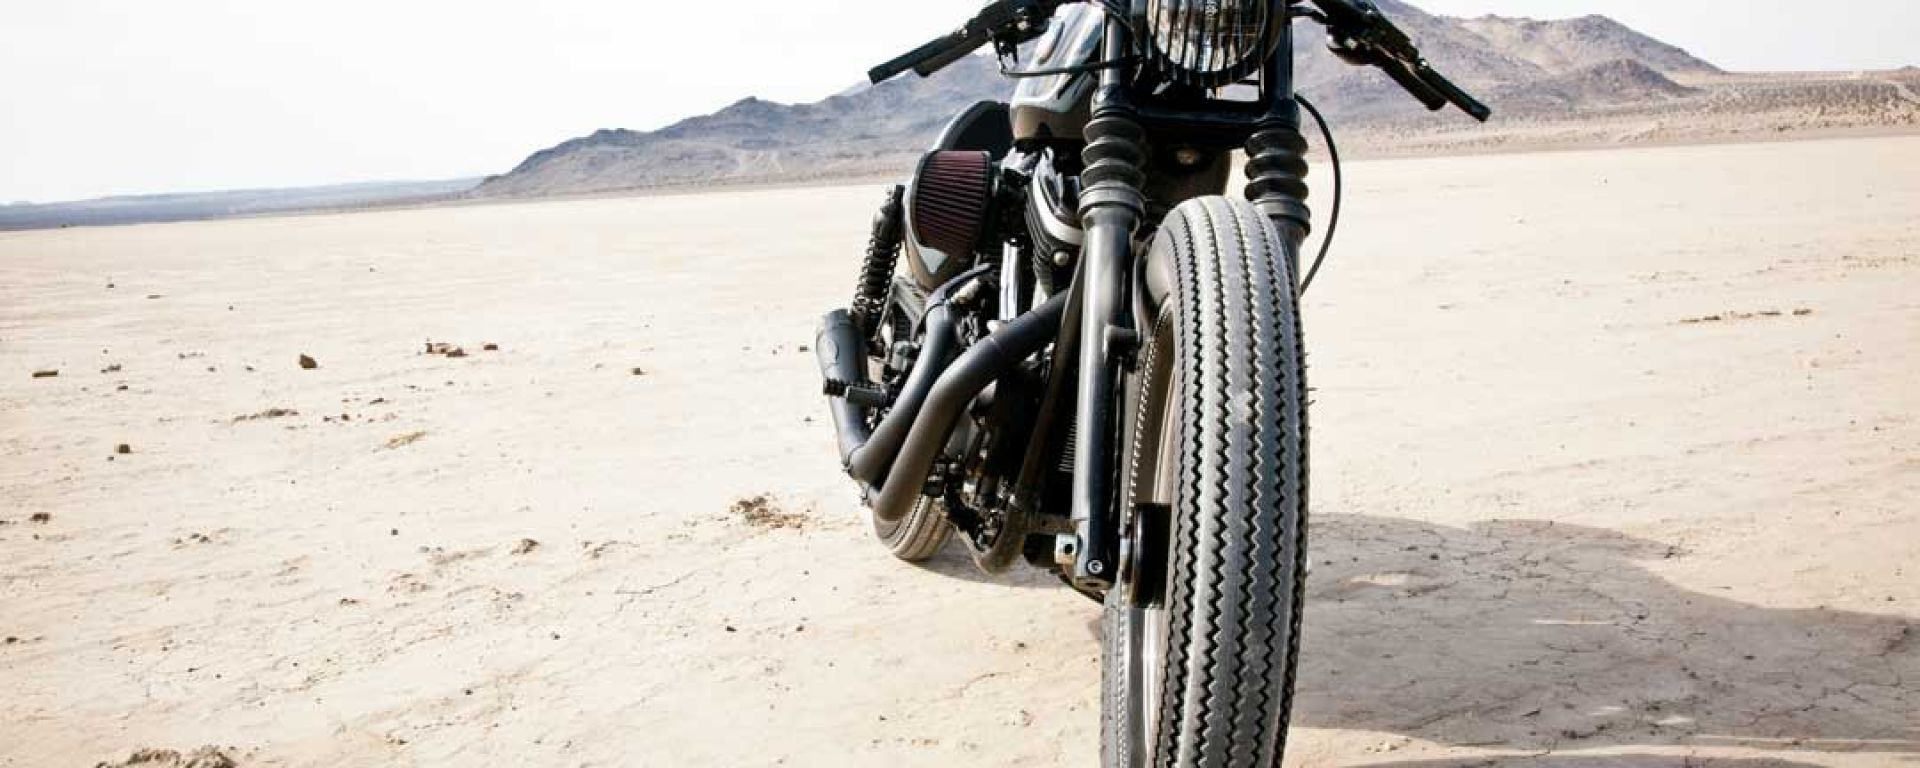 Technics Sporty by Roland Sands